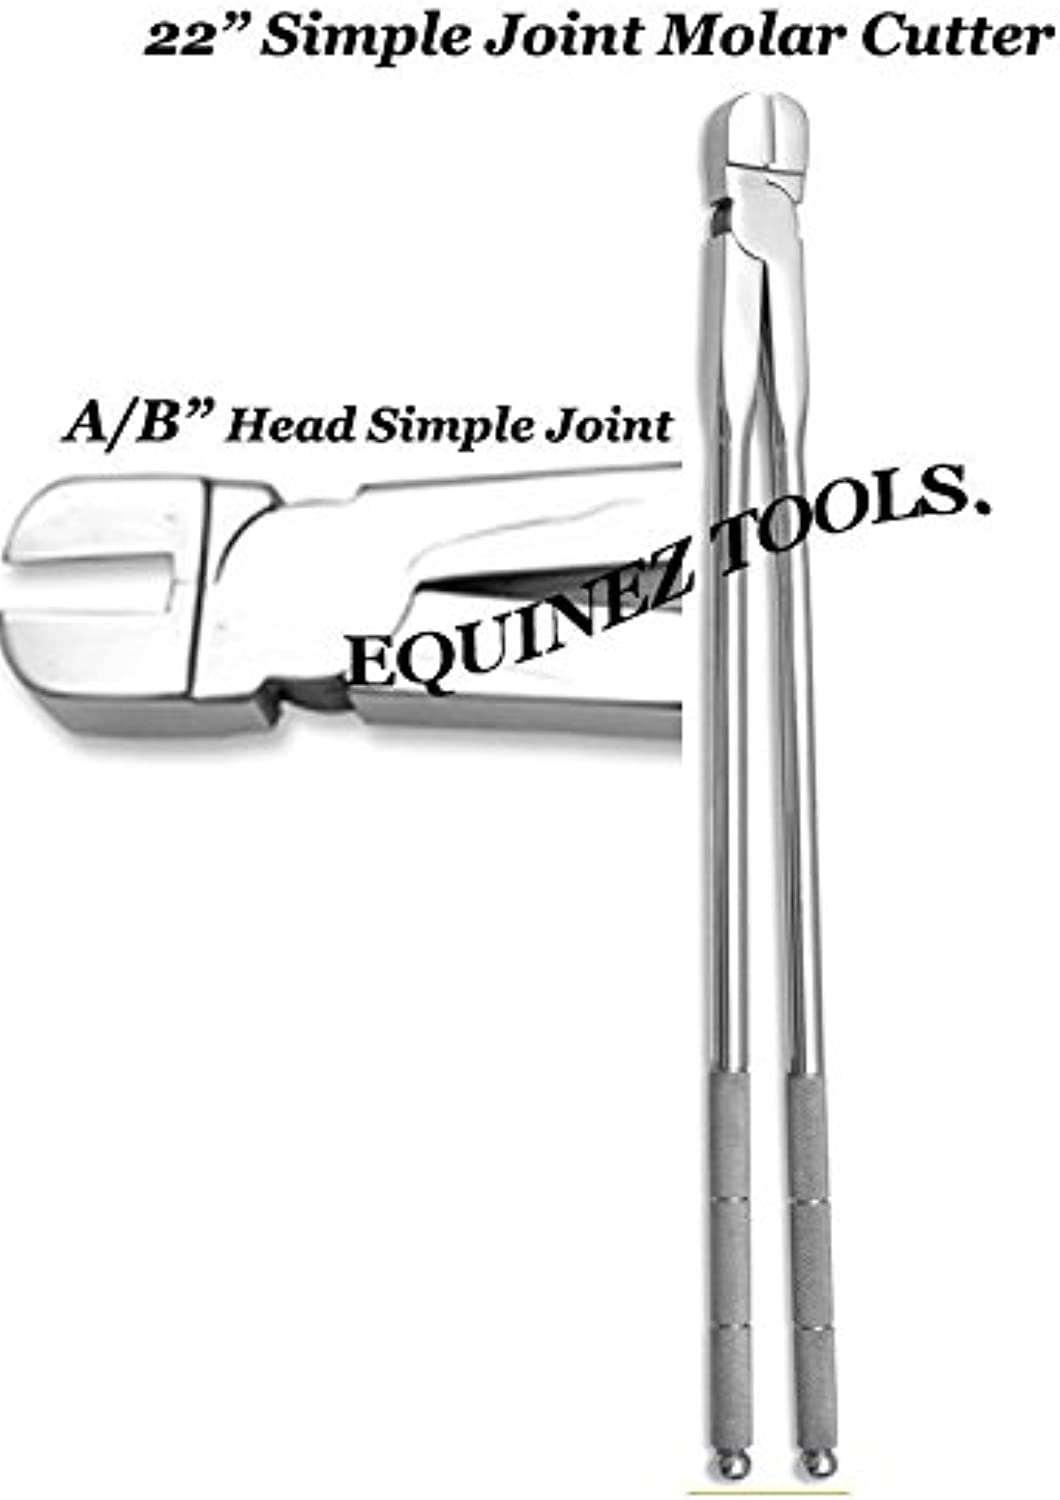 Equine Lower Molar Cutter Simple Joint 22  Fig  A B Equine Dental Tools.